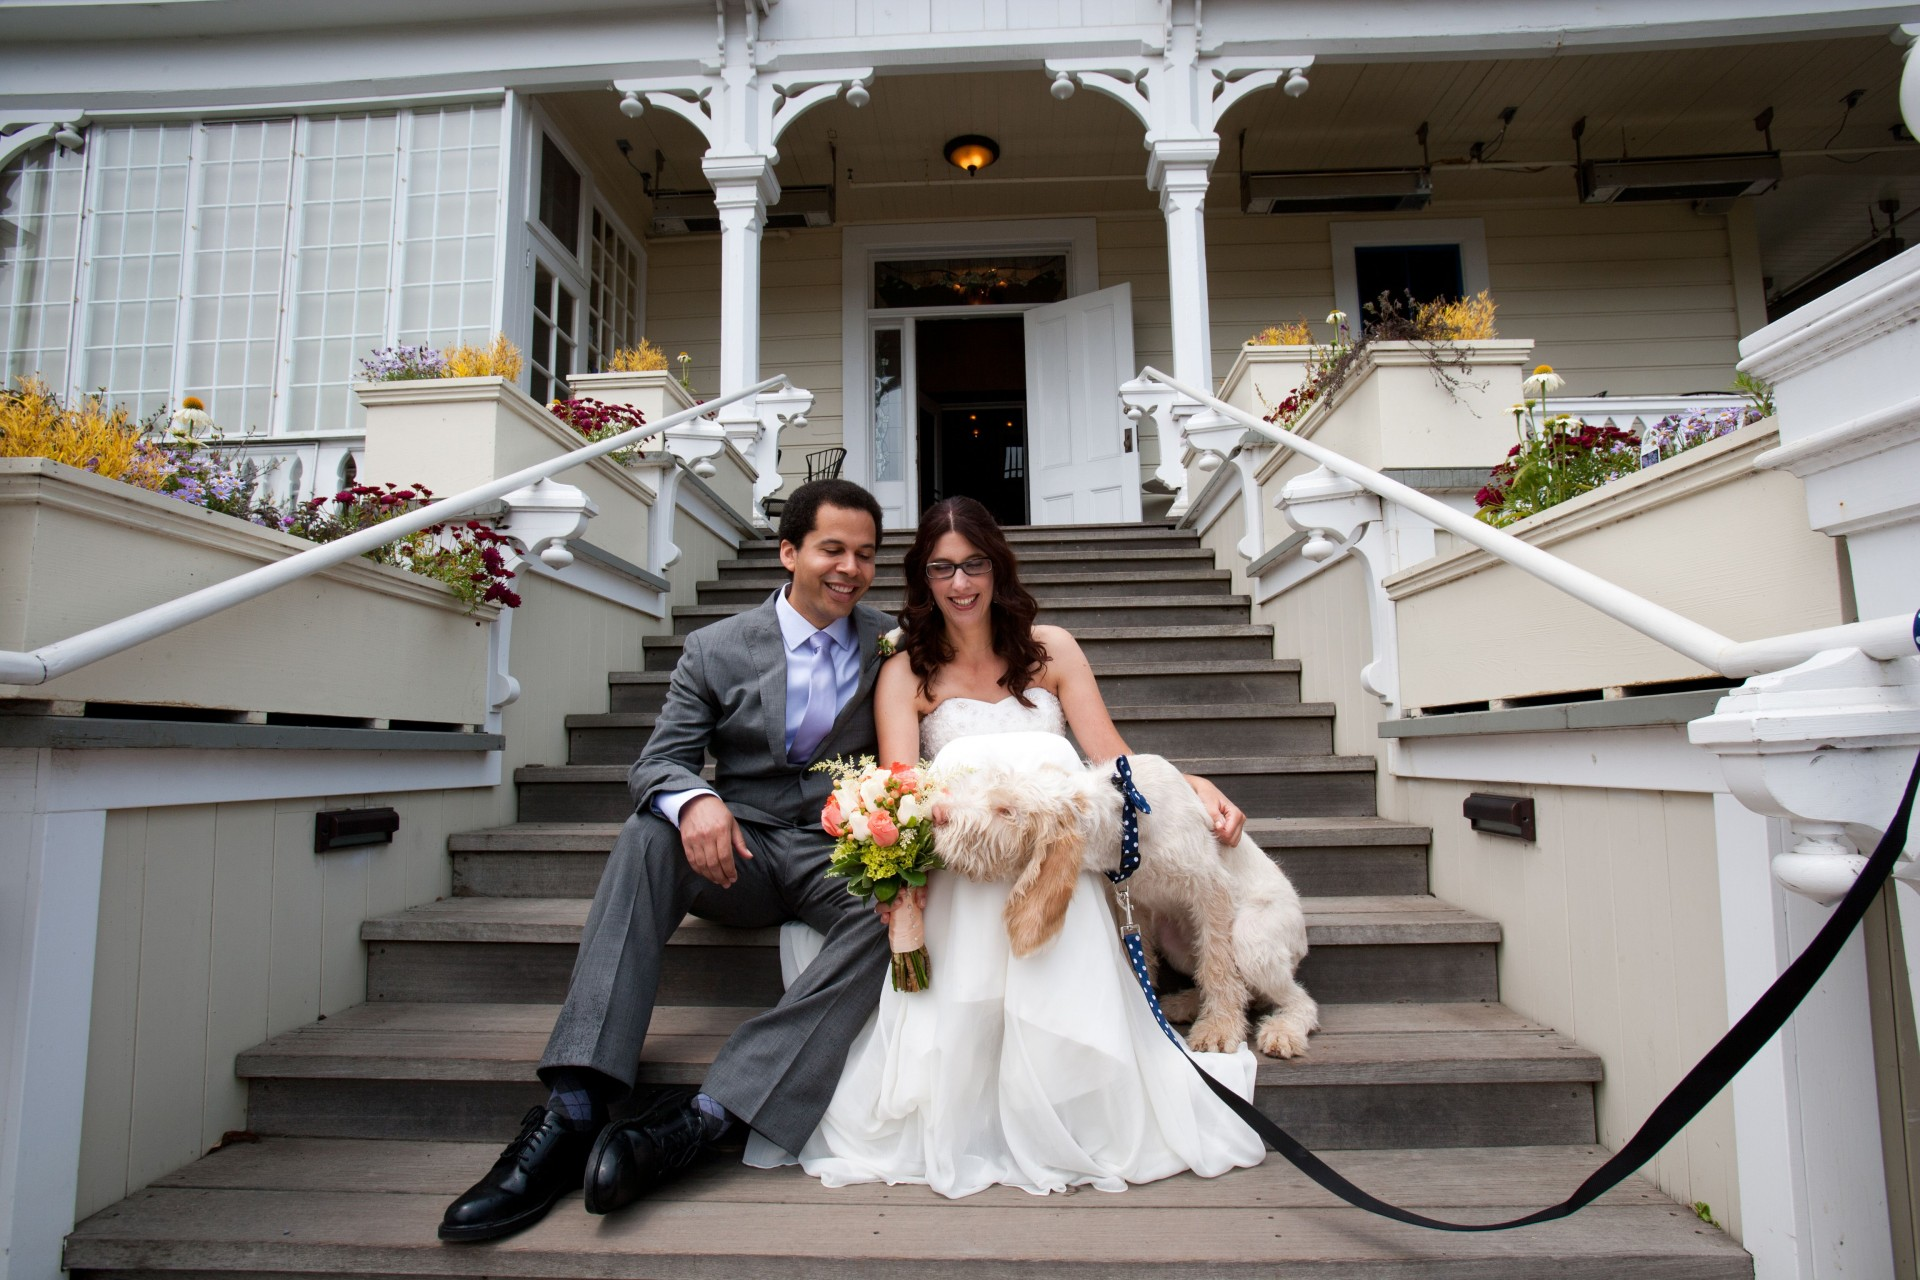 Elope to Mendocino!